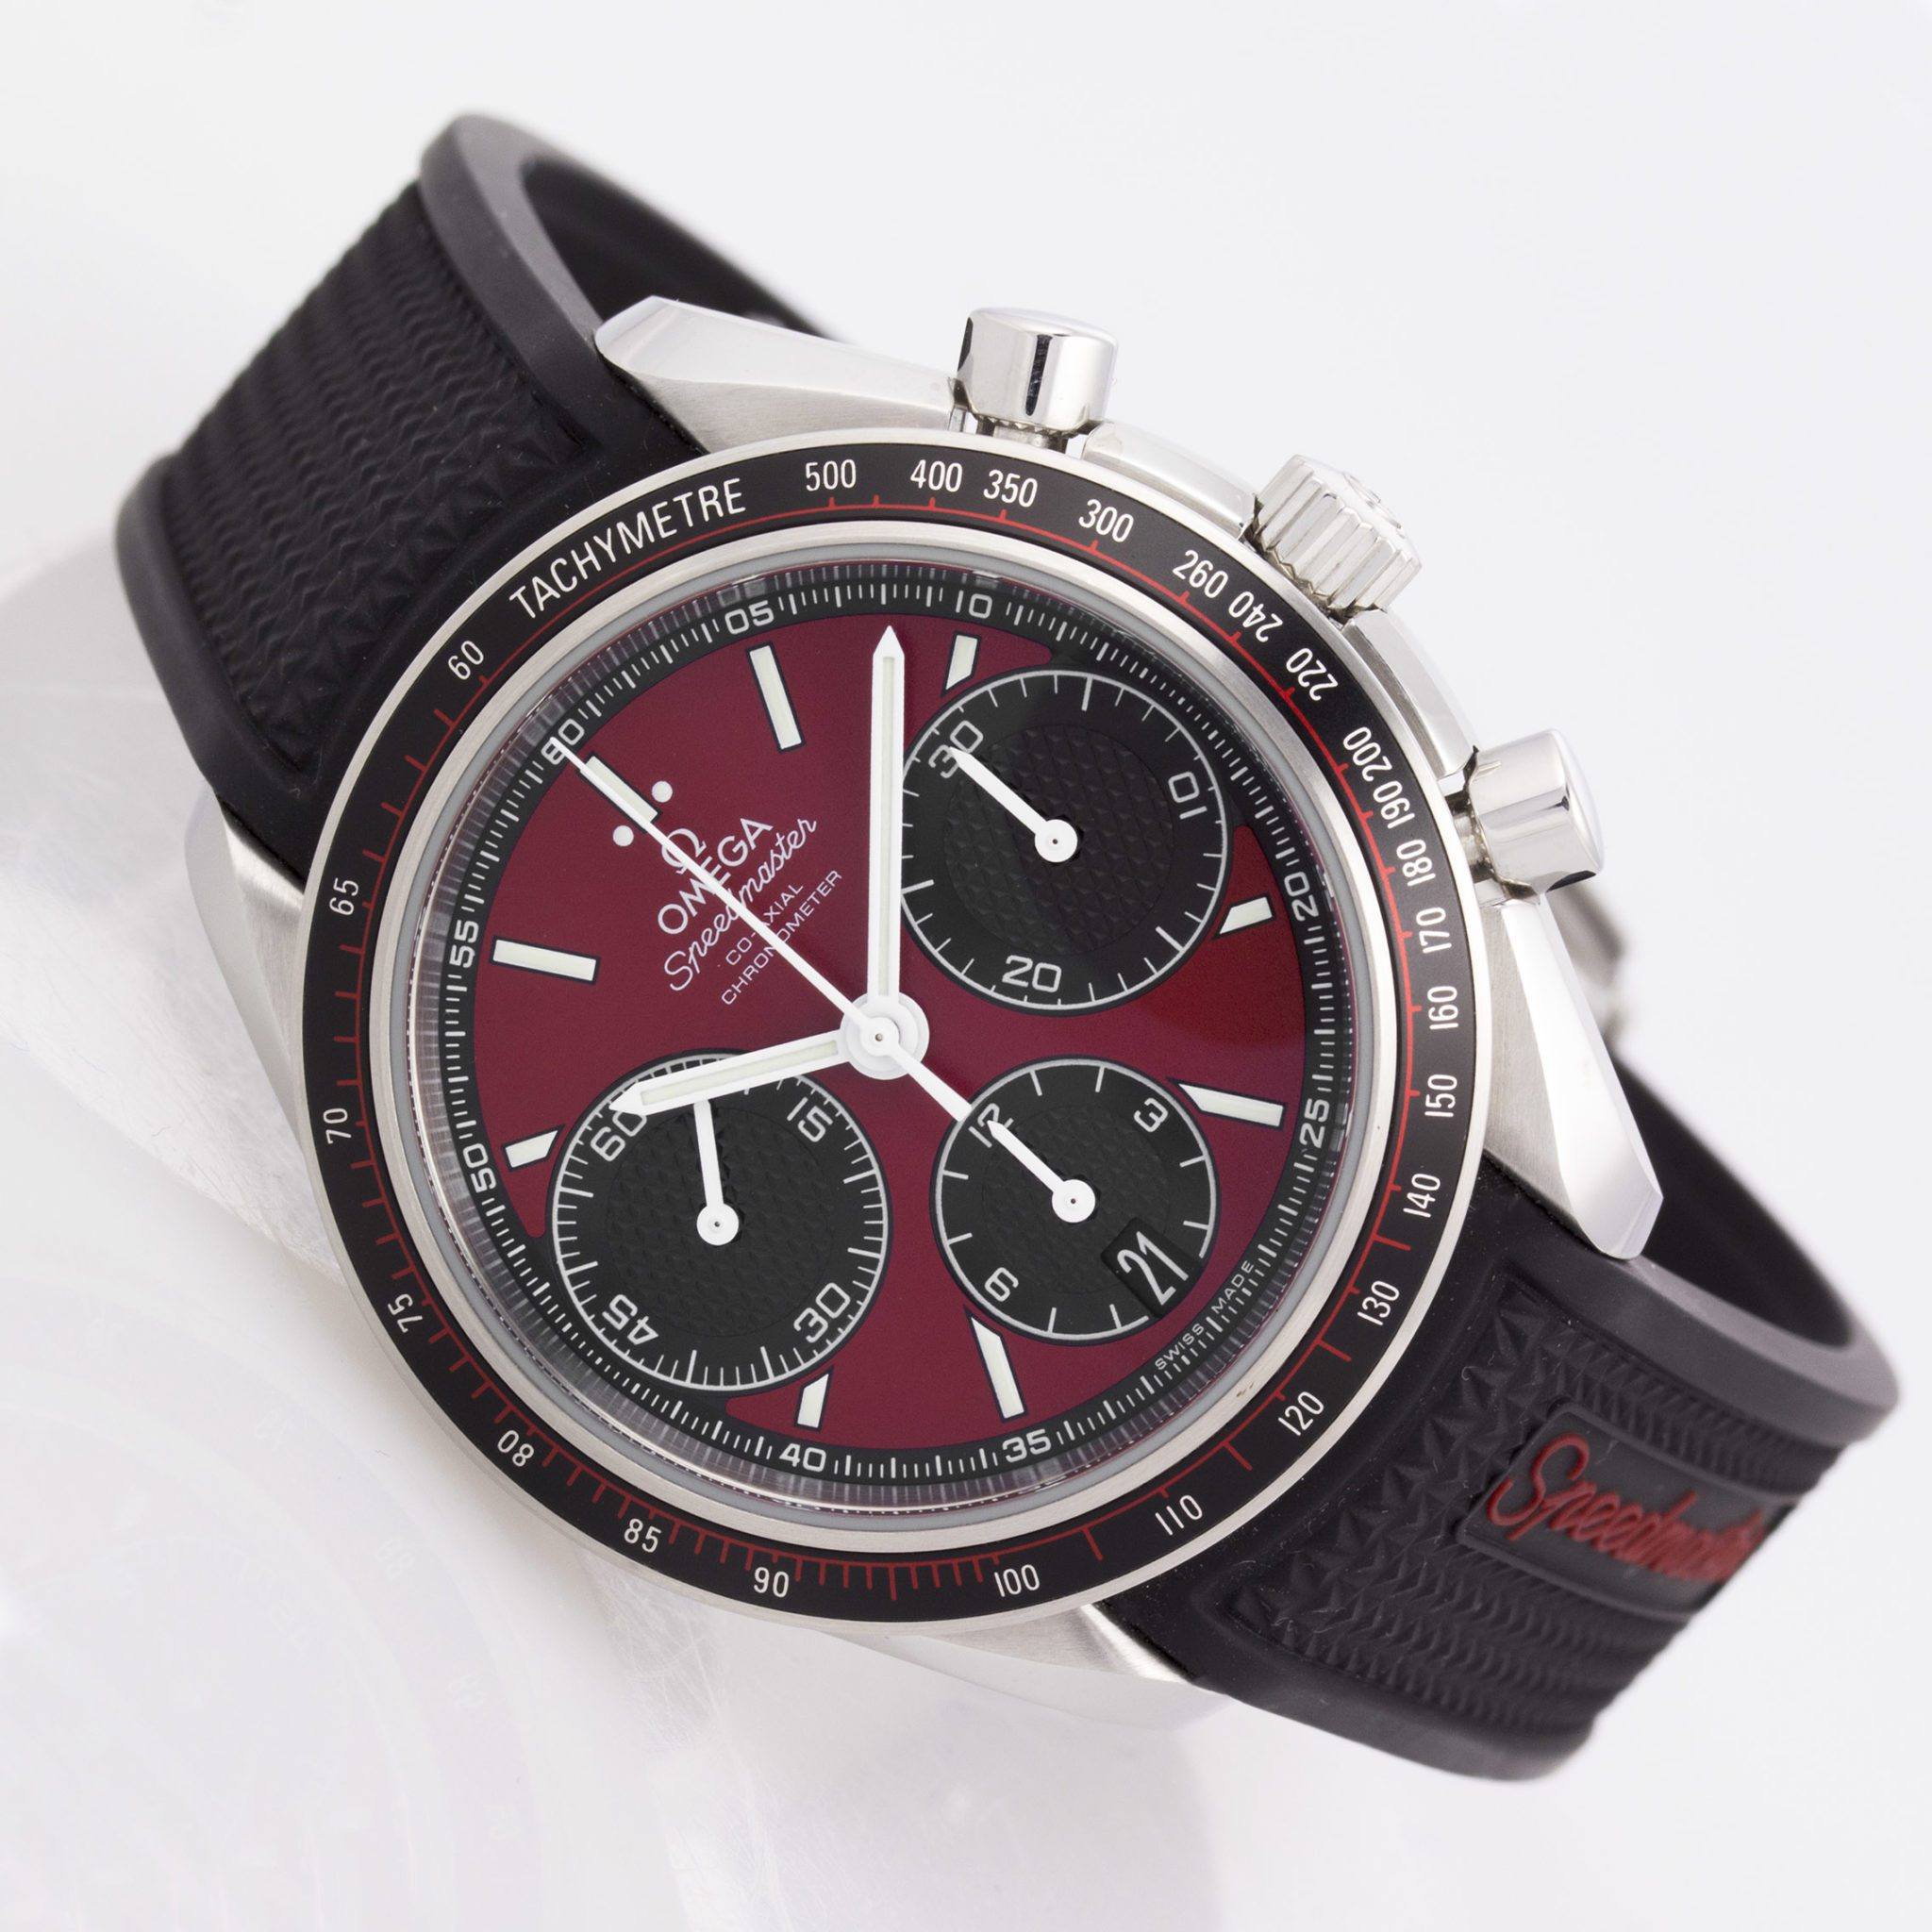 Omega - 326.32.40.50.11.001 - Speedmaster Racing 40mm - SS - Red-Blk Dial - Blk Rbr Strap - Deploy (4610) (2)